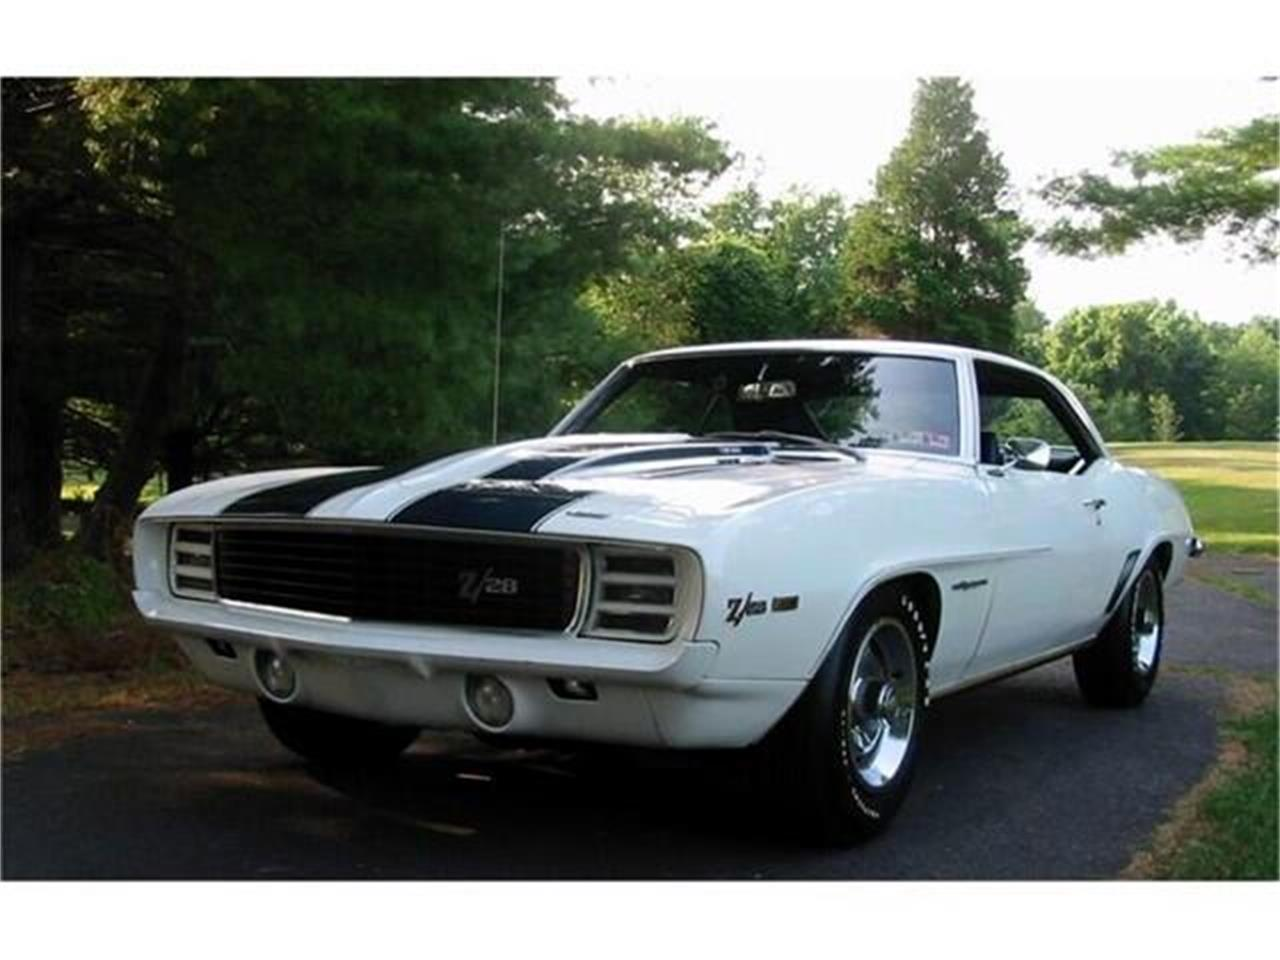 for sale 1969 chevrolet camaro in harpers ferry, west virginia cars - harpers ferry, wv at geebo